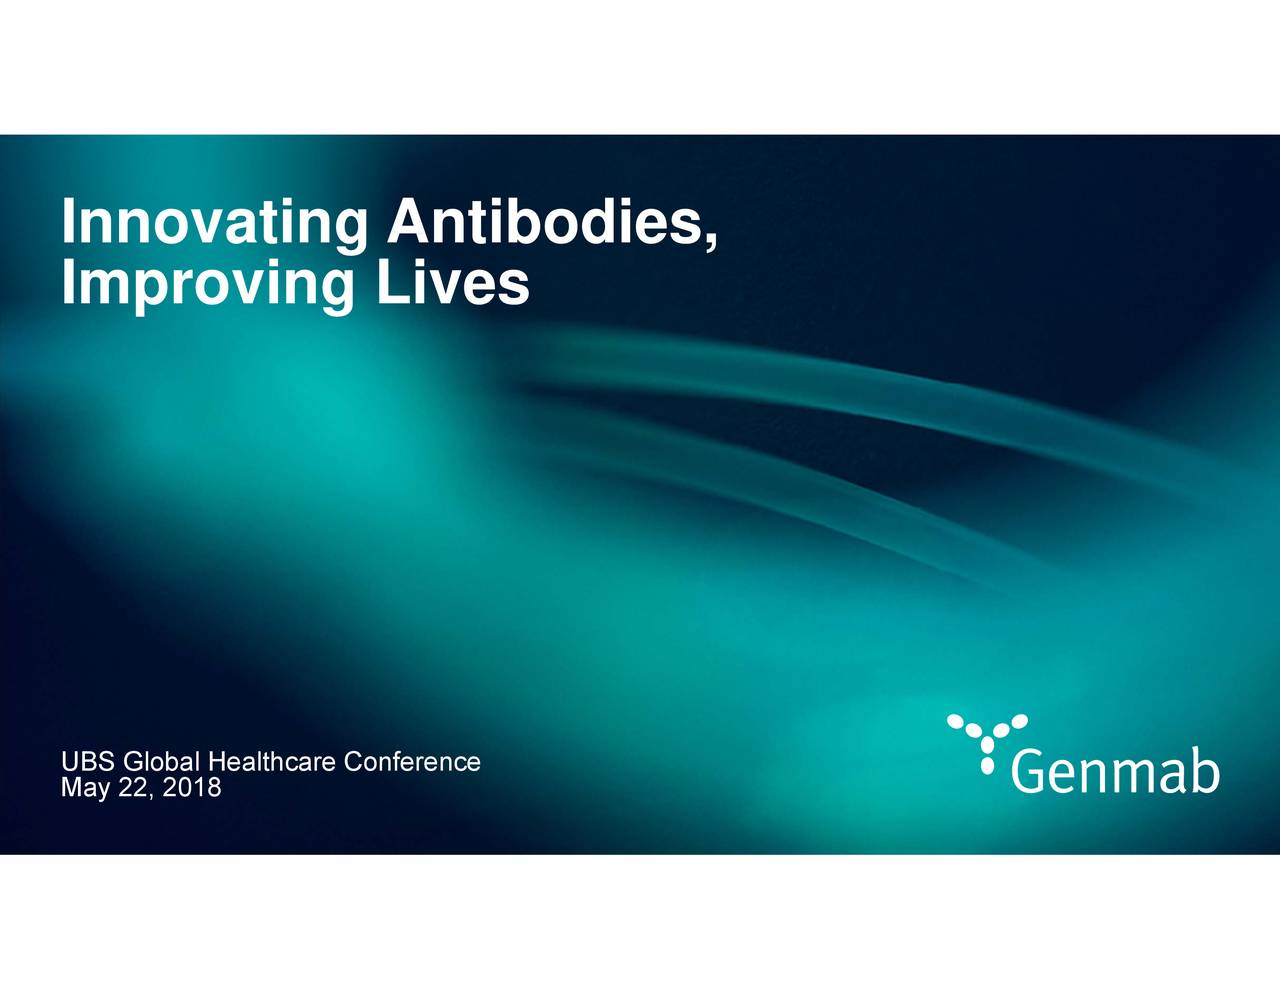 Genmab (GMXAY) Presents At 2018 UBS Global Healthcare